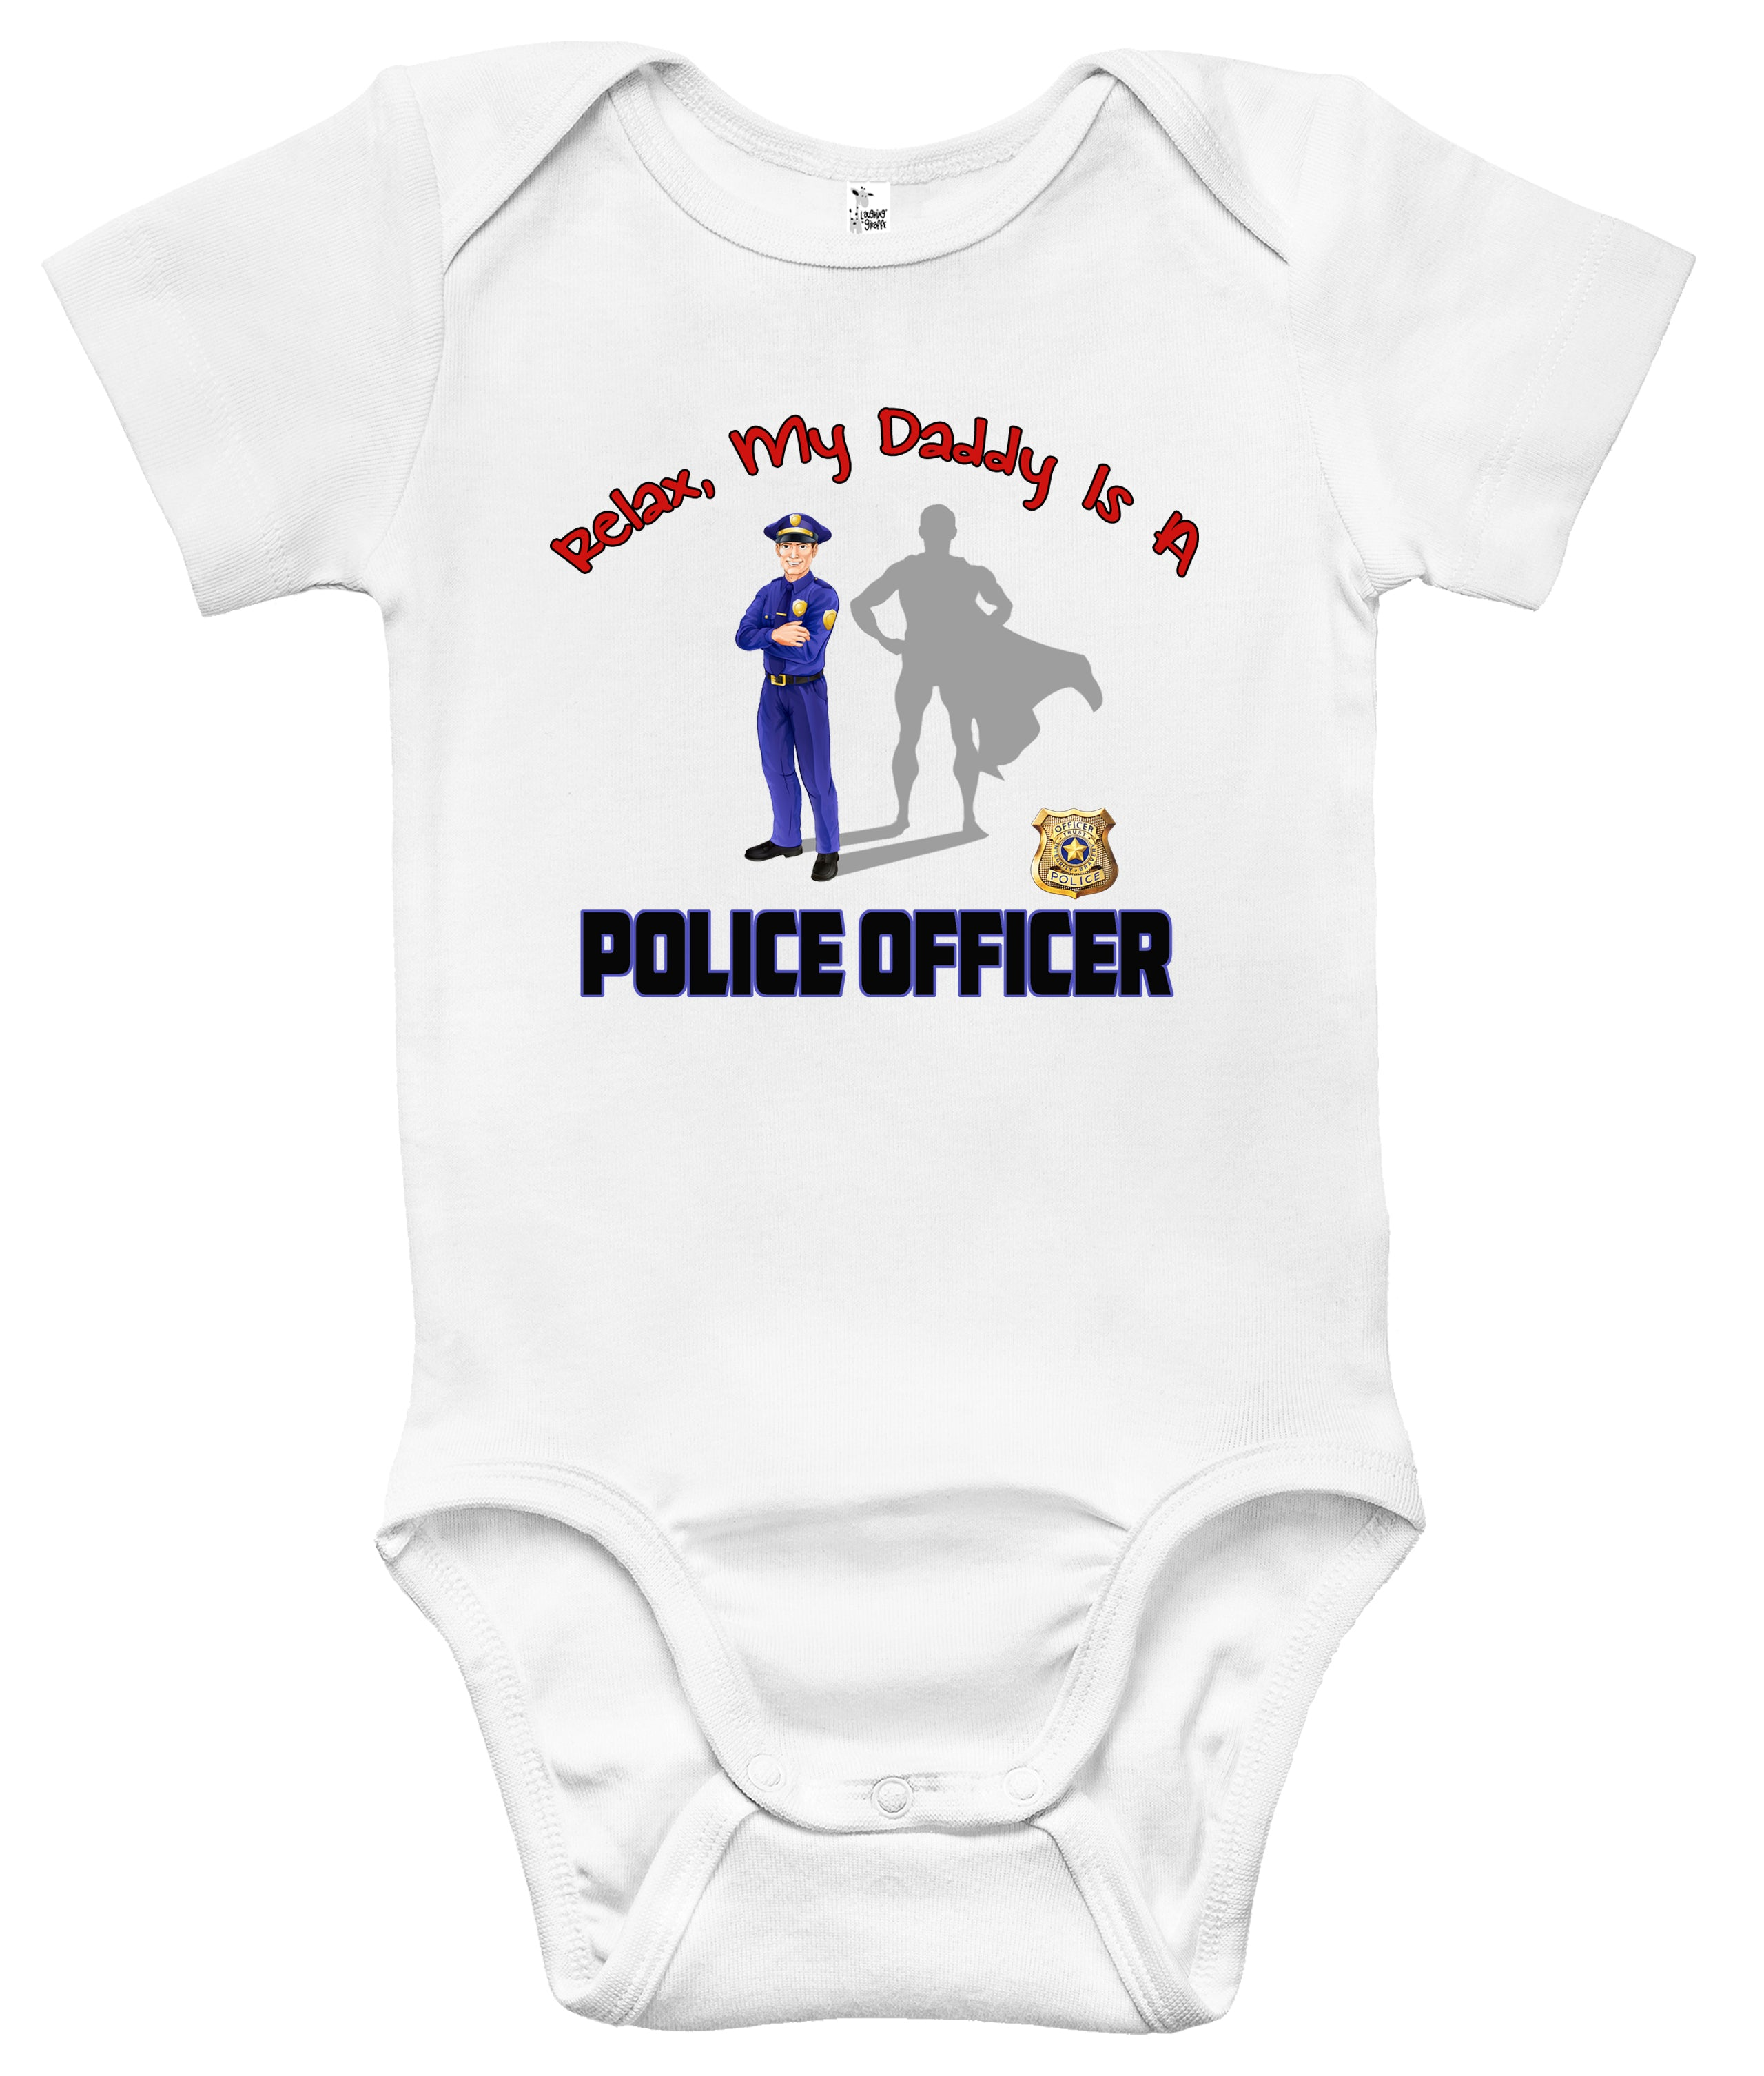 Cute Baby Bodysuits and Kids Shirts RELAX MY DADDY/'S A FIREFIGHTER